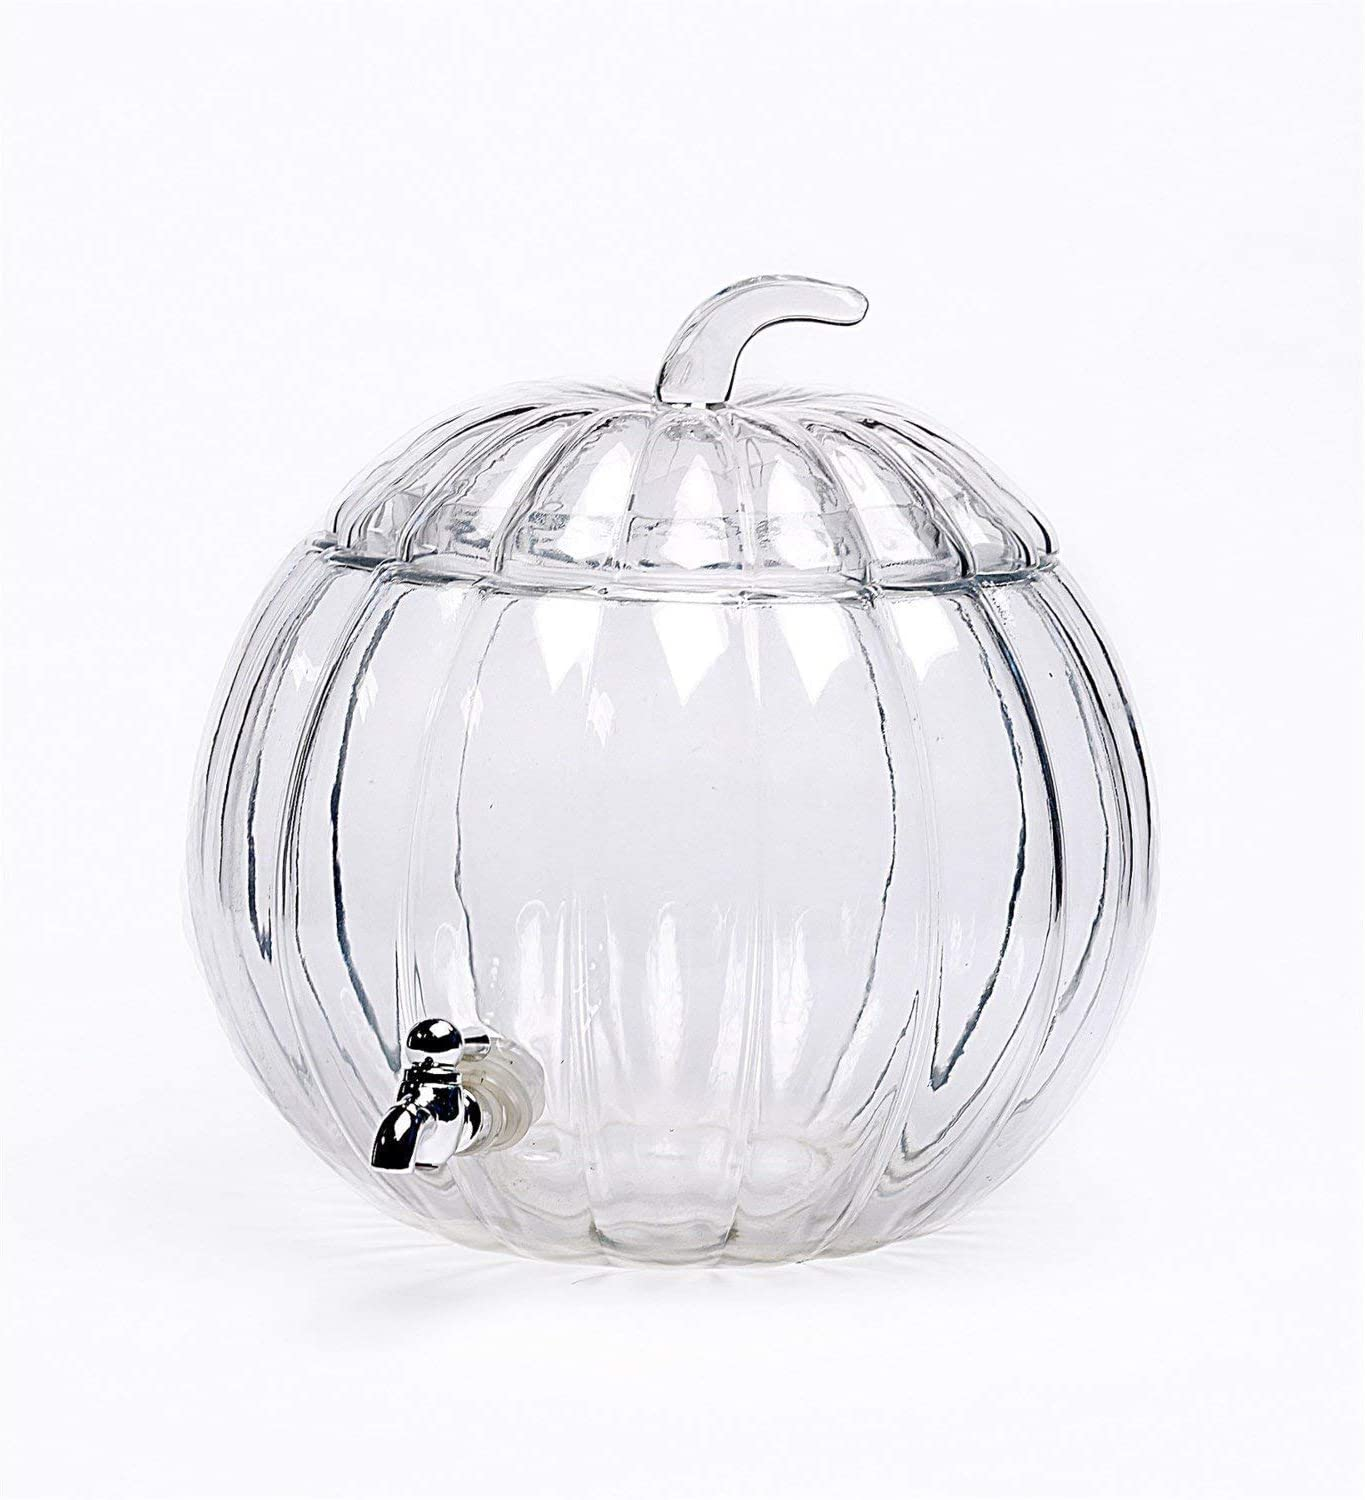 Circleware Pumpkin Jar Glass Beverage Dispenser with Lid, Glassware Water Juice, Beer, Wine, Liquor, Kombucha Iced Punch & Best Selling Drinks, 1.9 Gallon, Clear